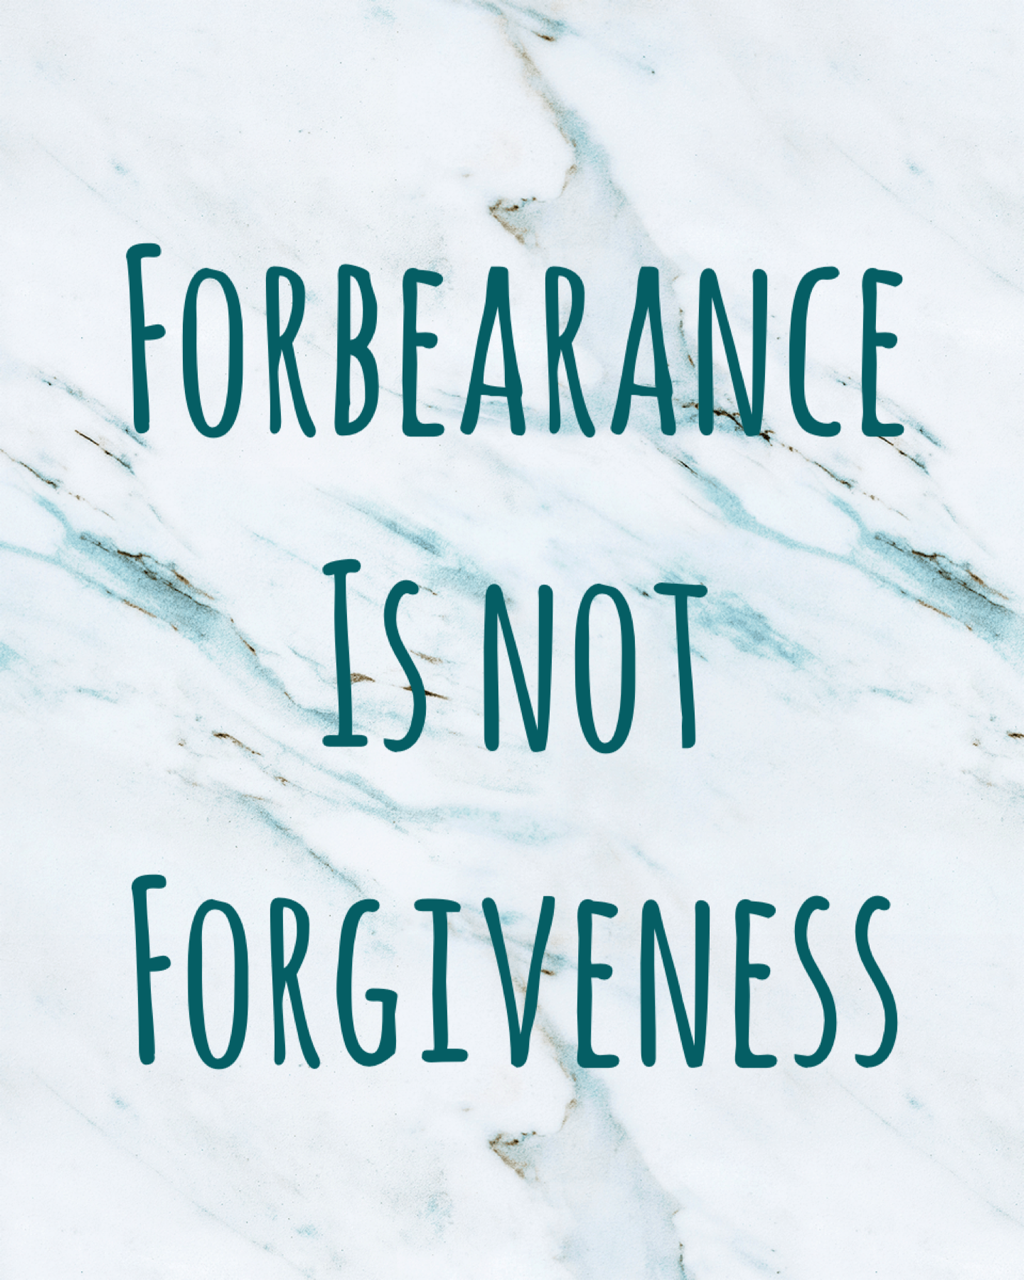 Forebearance is not forgiveness